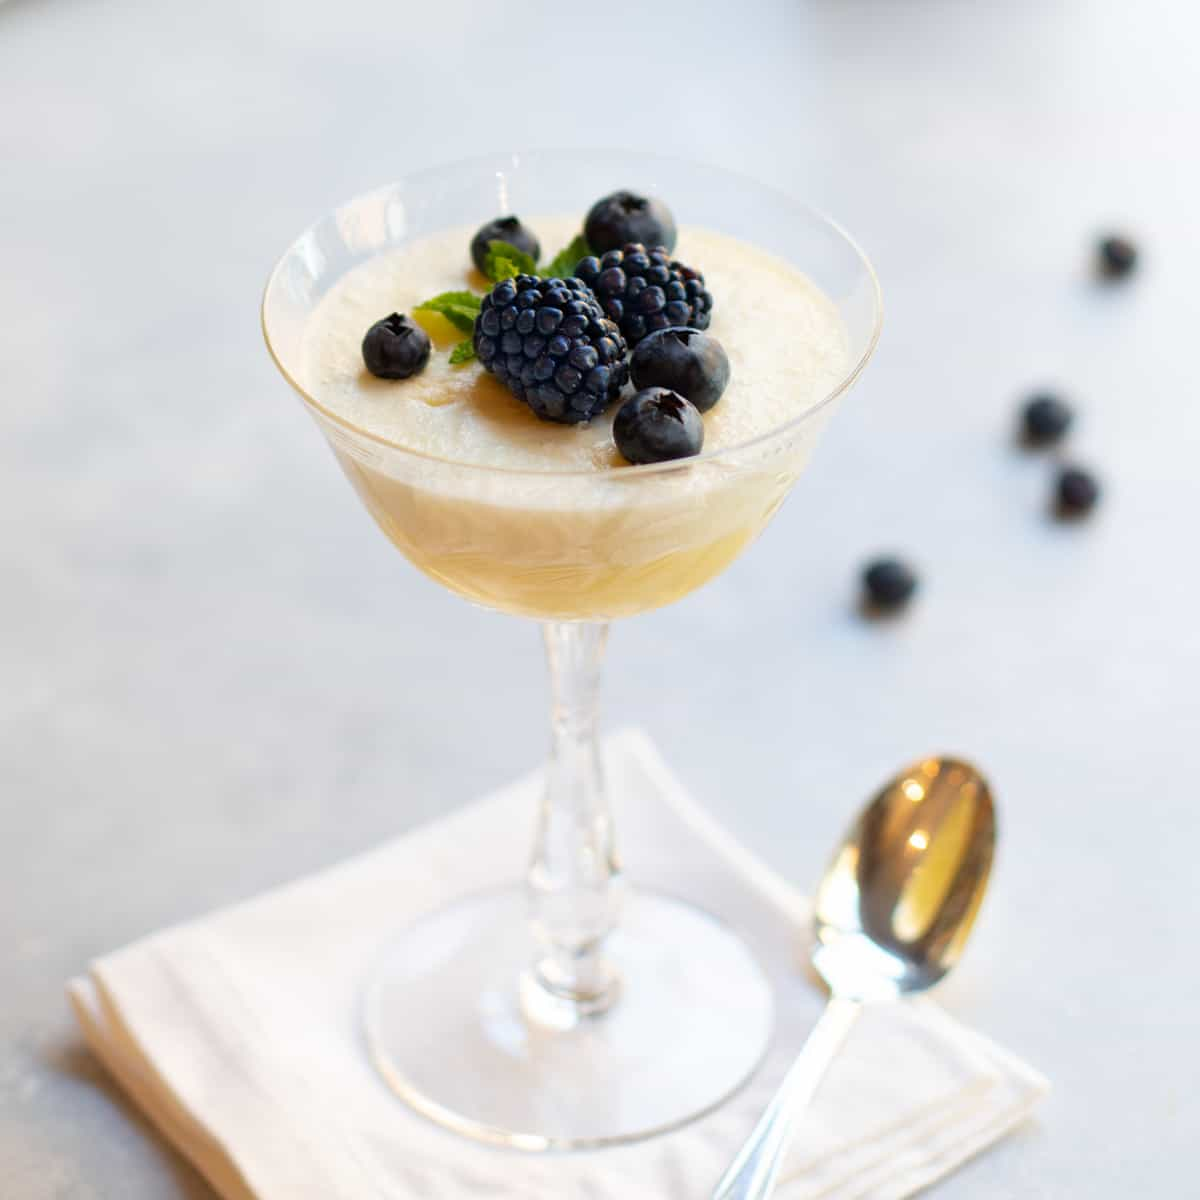 champagne coupe glass filled with Chilled Lemon Souffle and topped with fresh blackberries and blueberries